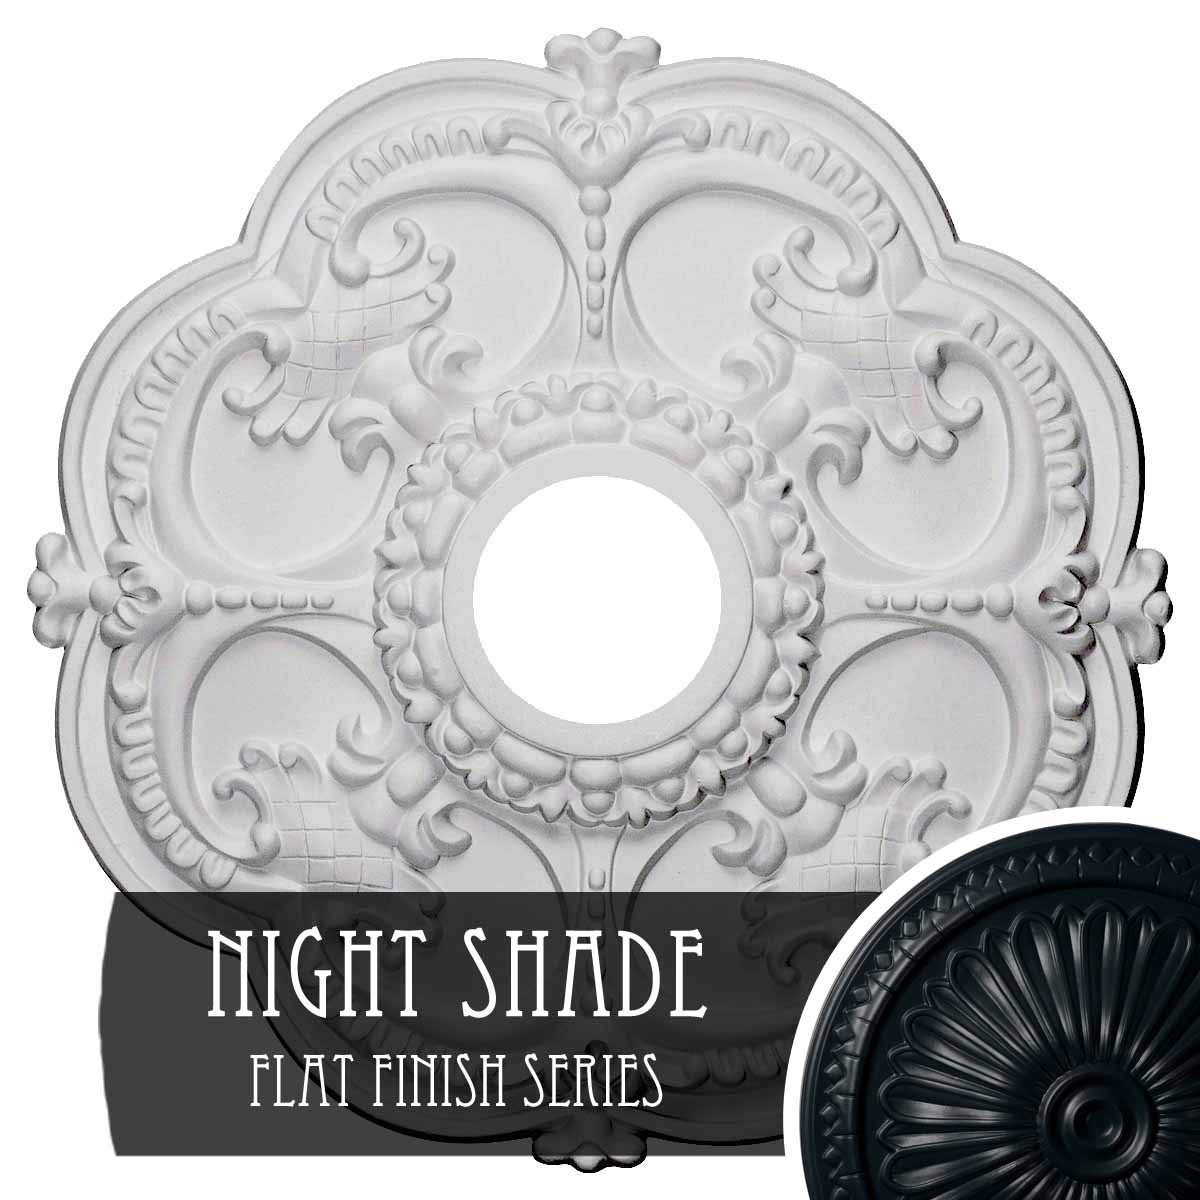 Night Shade Ekena Millwork CM17ROUWF redherham Ceiling Medallion, 18 OD x 3 1 2 ID x 1 1 2 P, Ultra Pure White